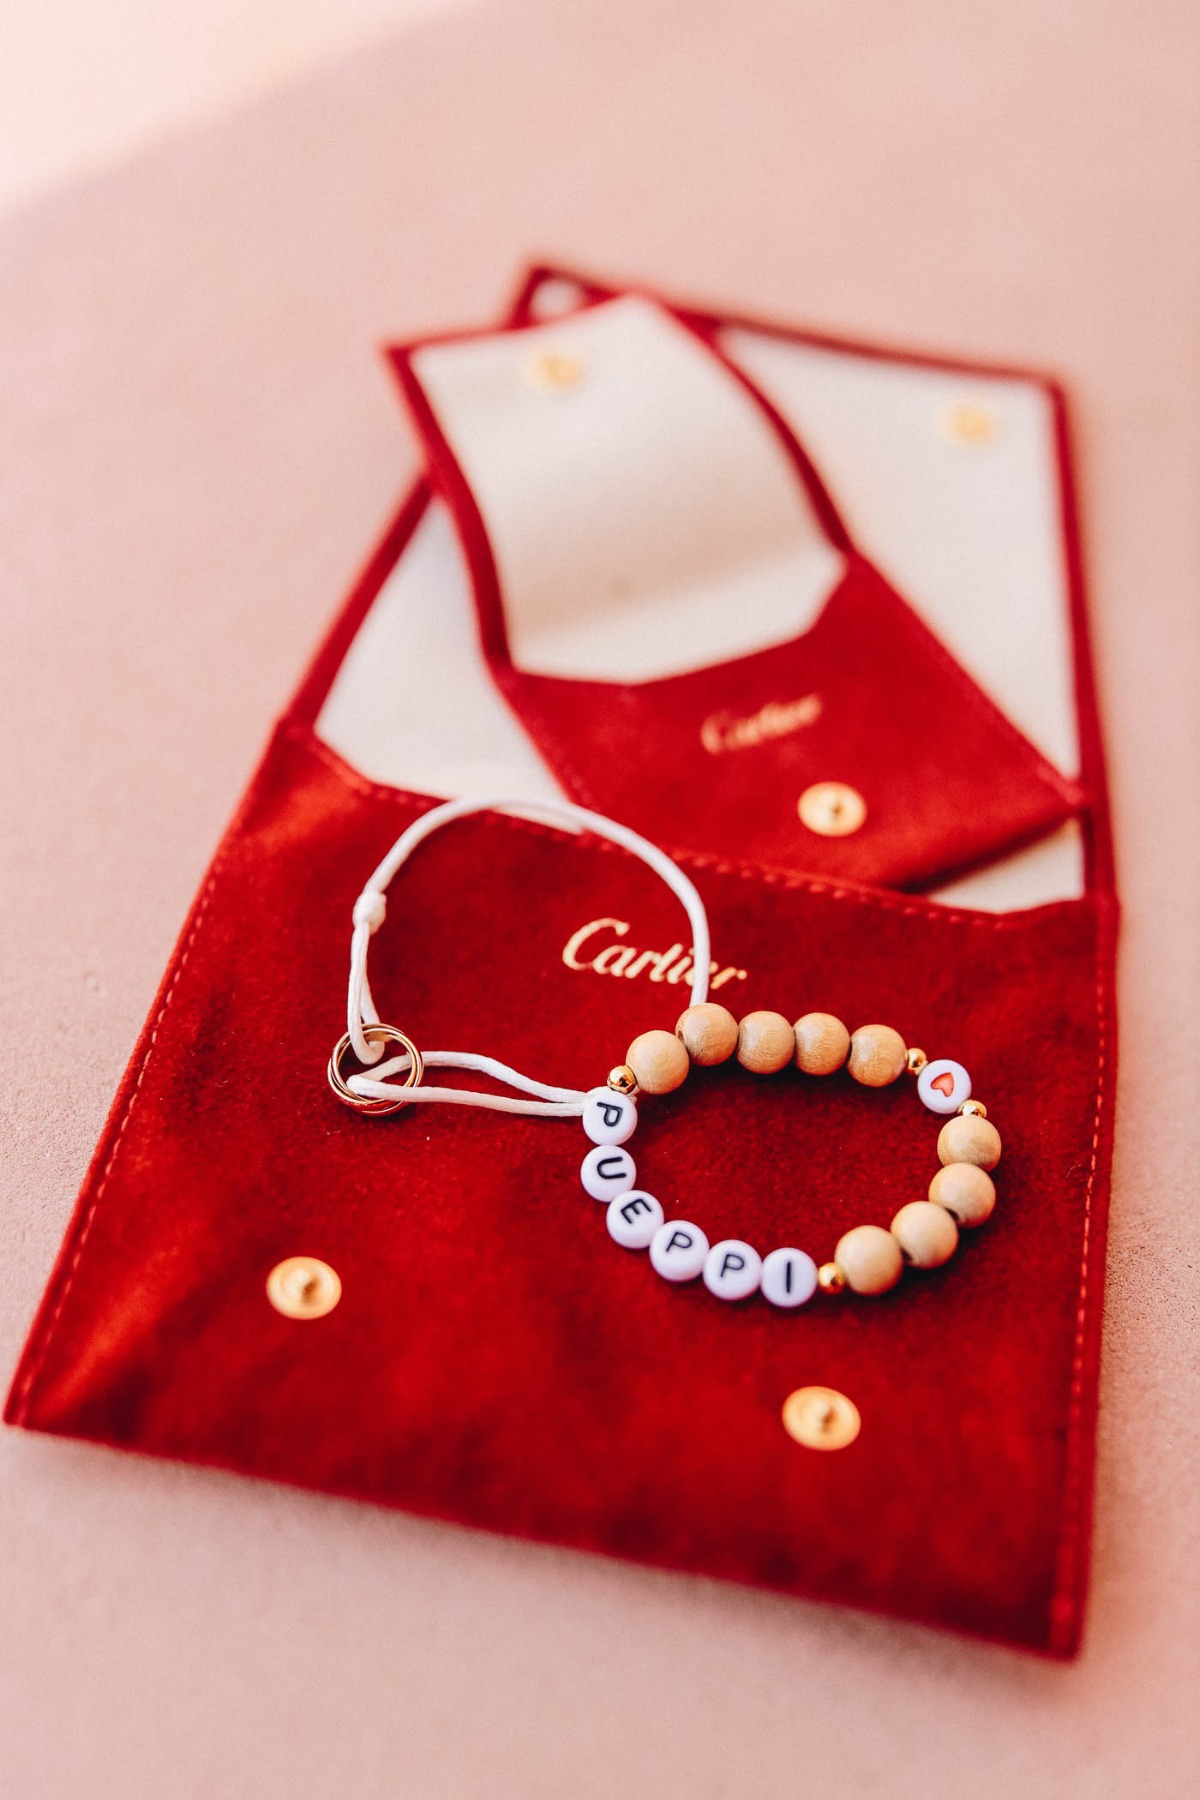 Cartier wedding jewelry for baby